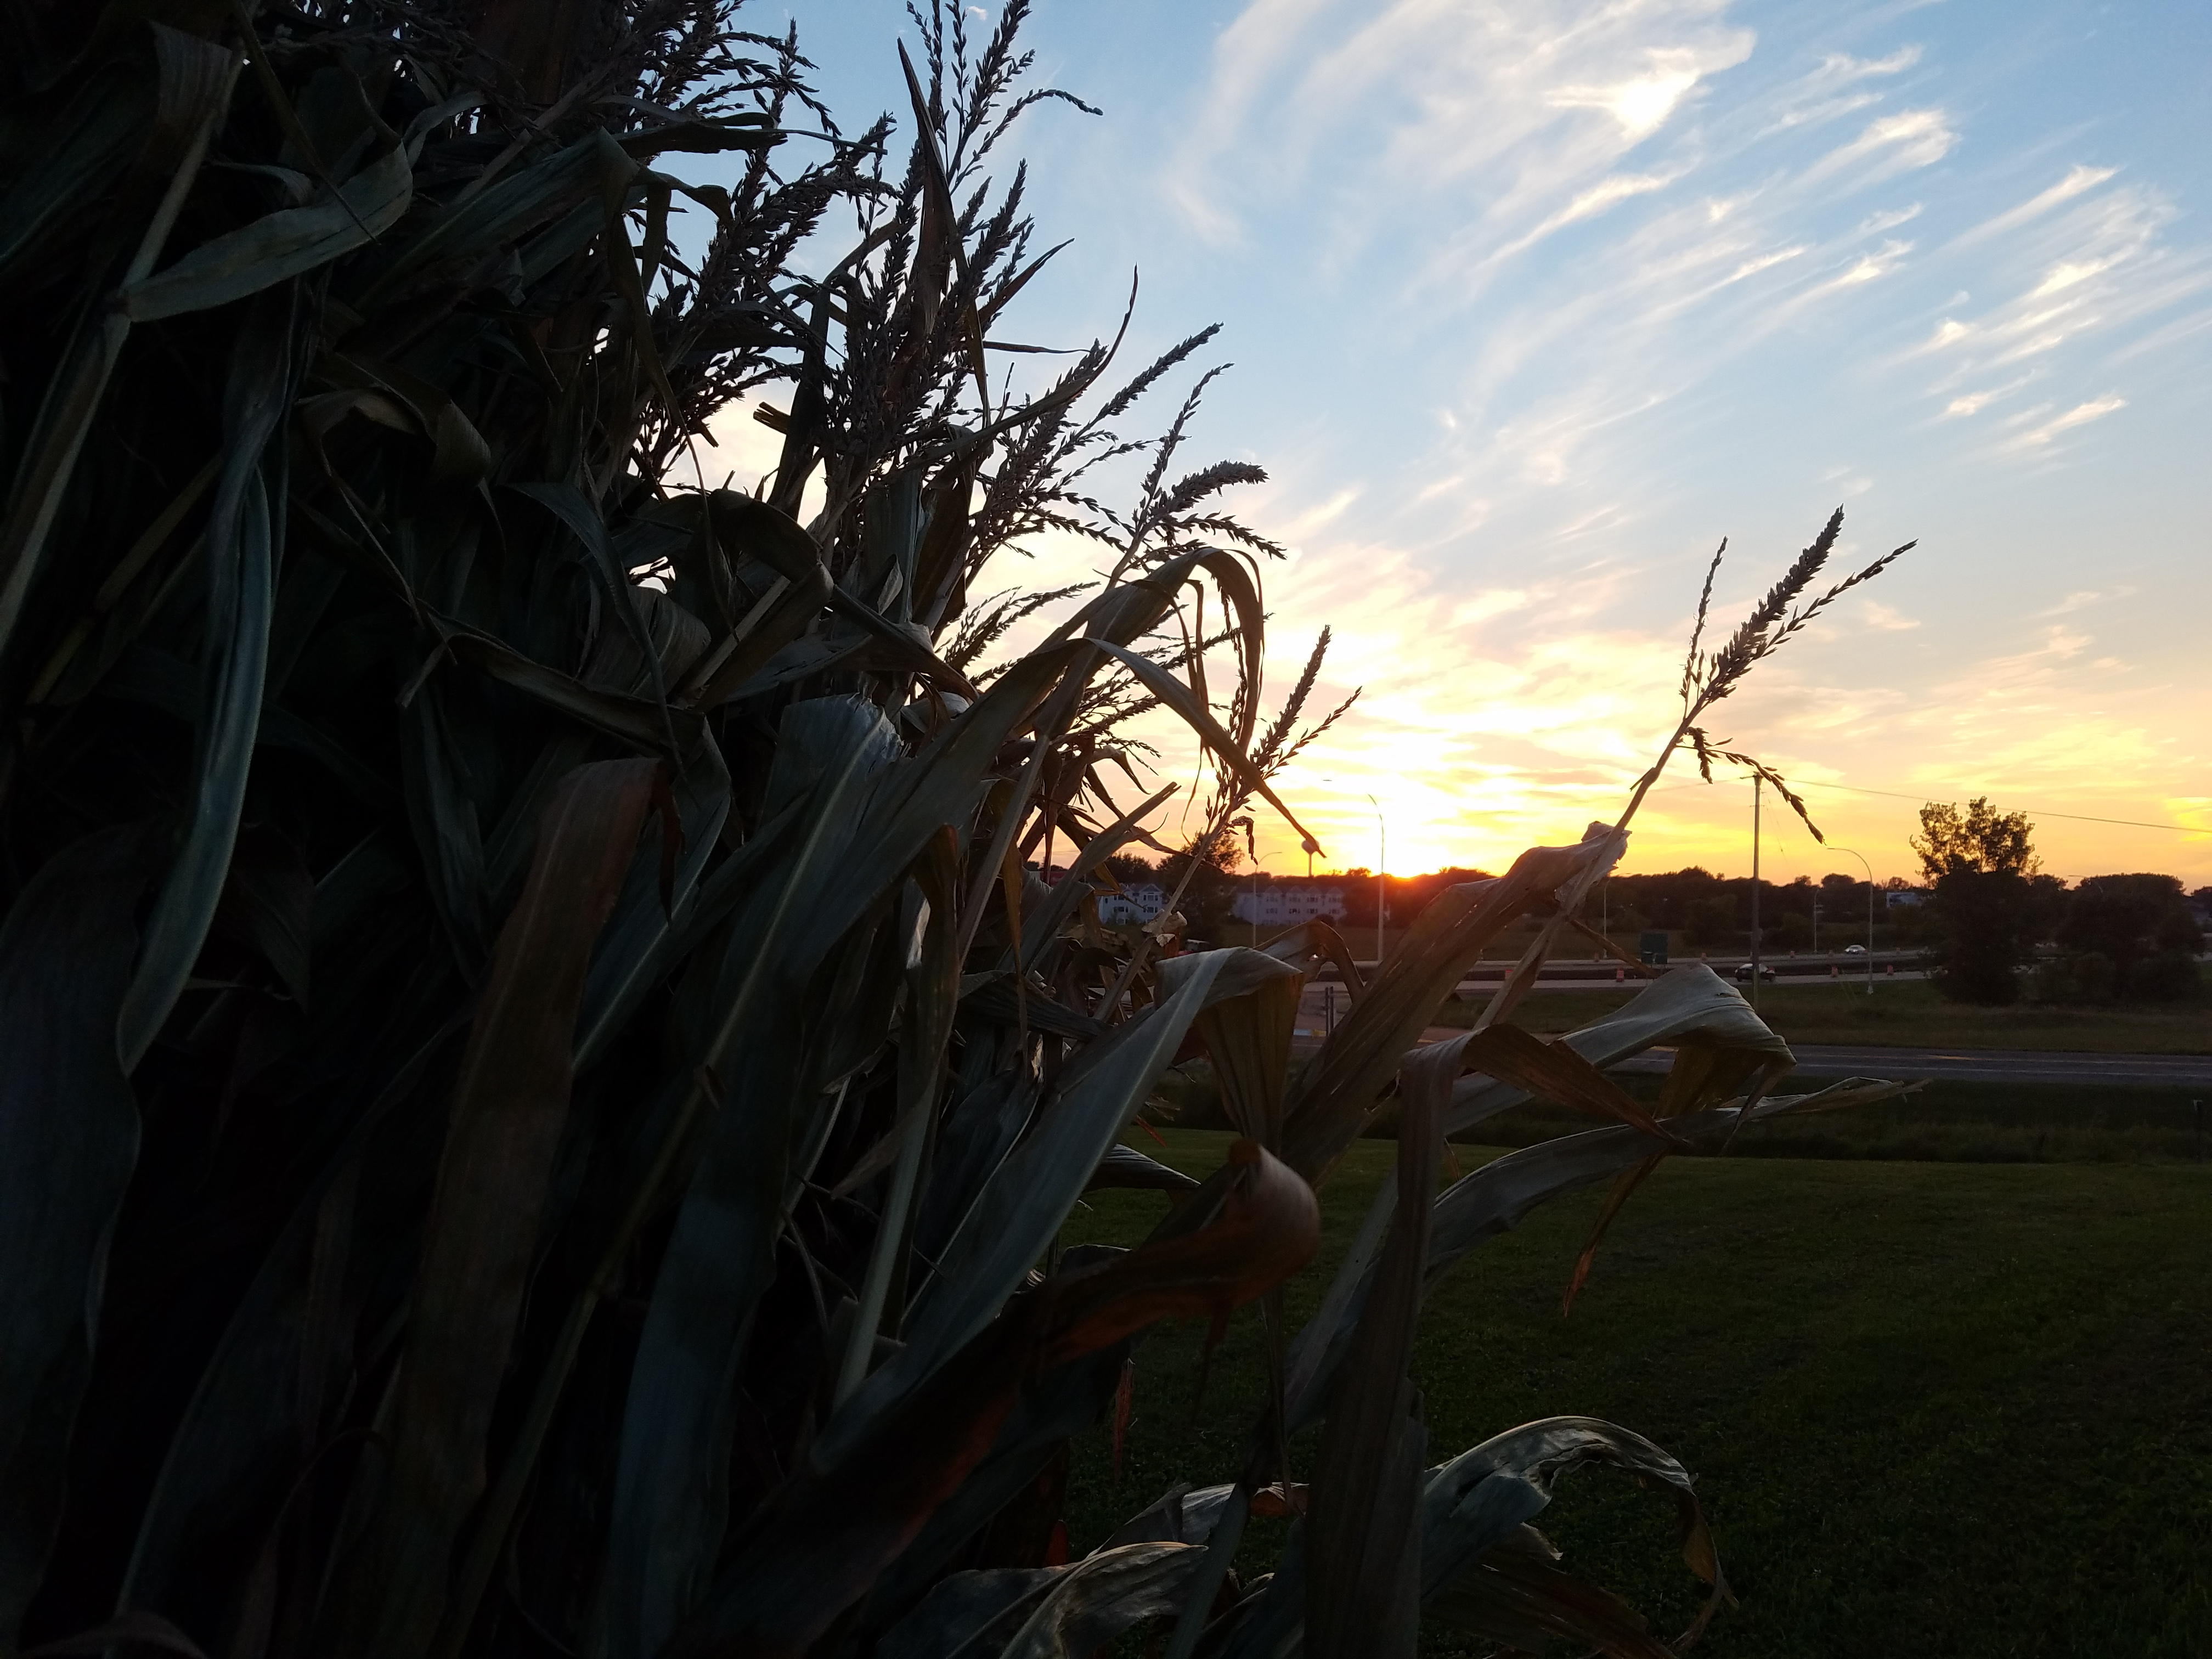 corn-stalks-sunset-421.jpg